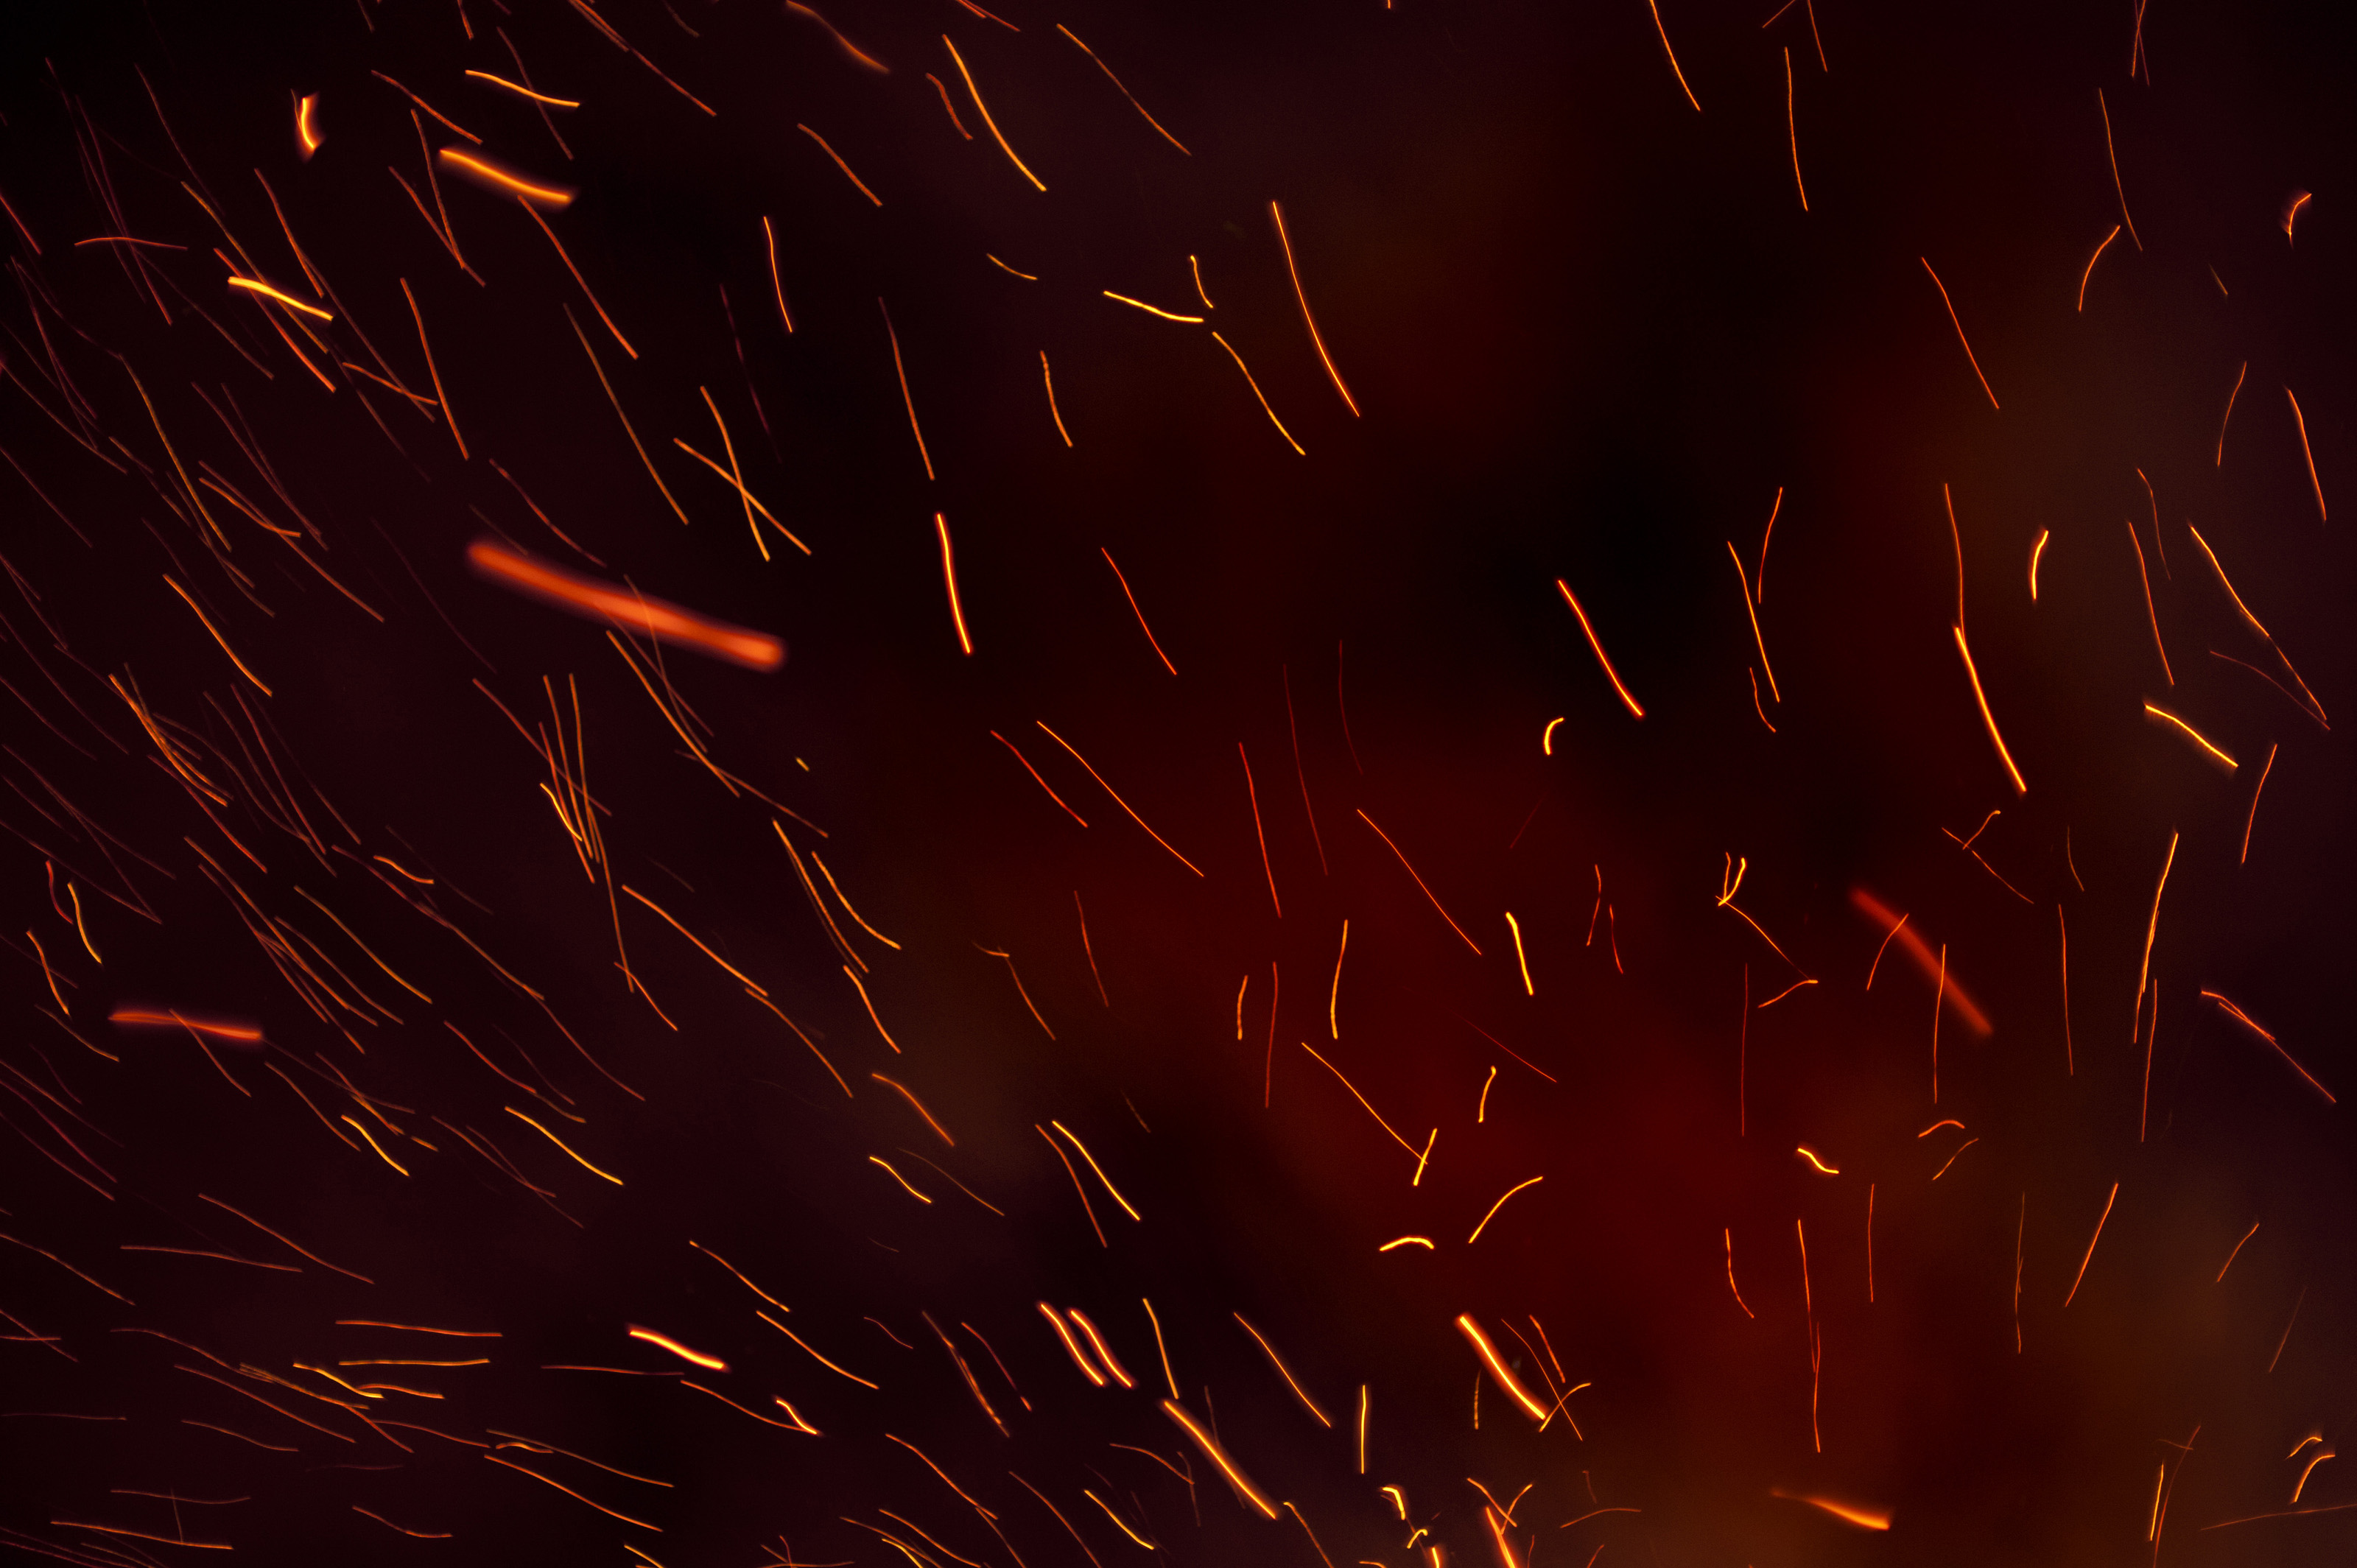 Free Stock Photo 8864 Fiery trails from glowing embers | freeimageslive